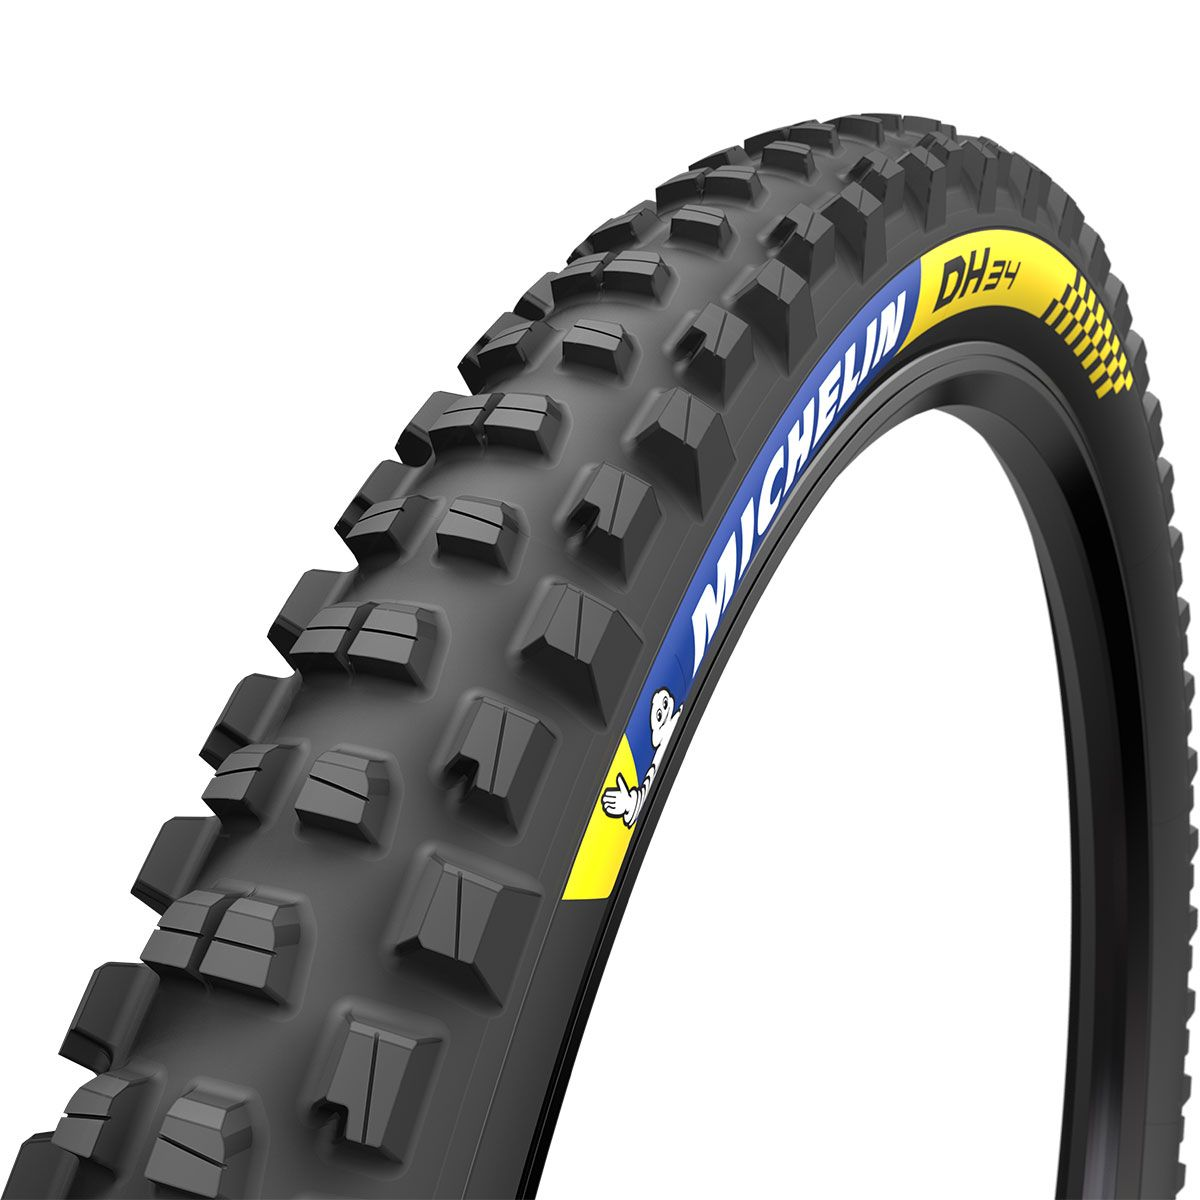 MICHELIN DH34 TLR WIRE 26X2.40 RACING LINE 897304 Množ. Uni